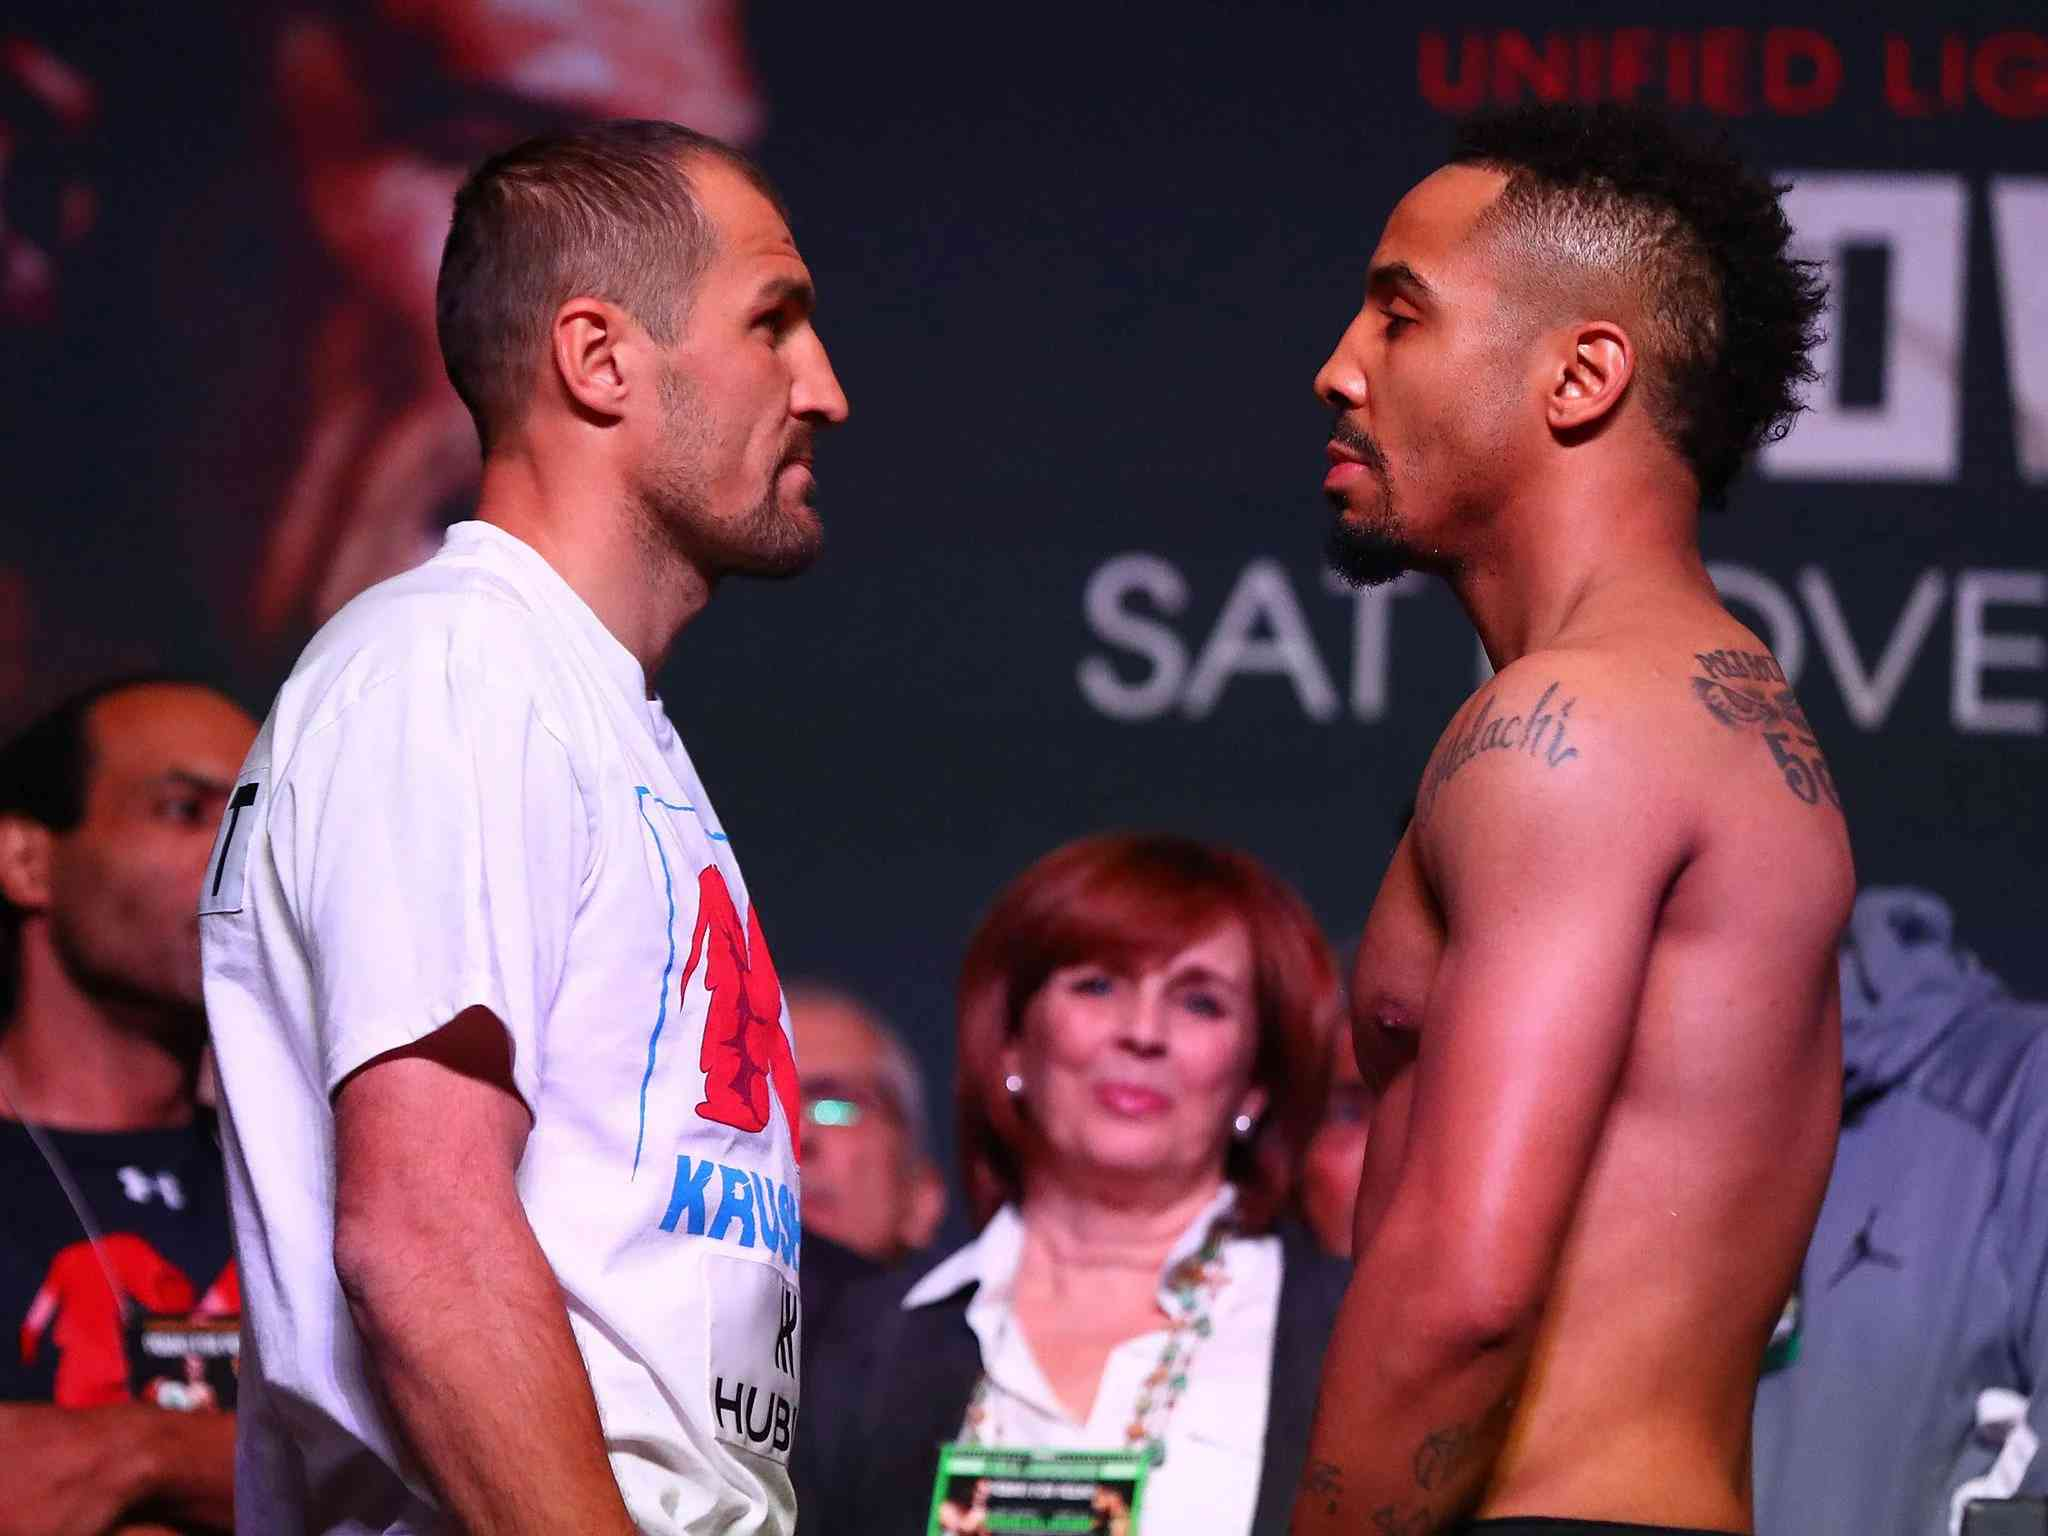 kovalev vs ward live stream sergey 2 andre fight 3